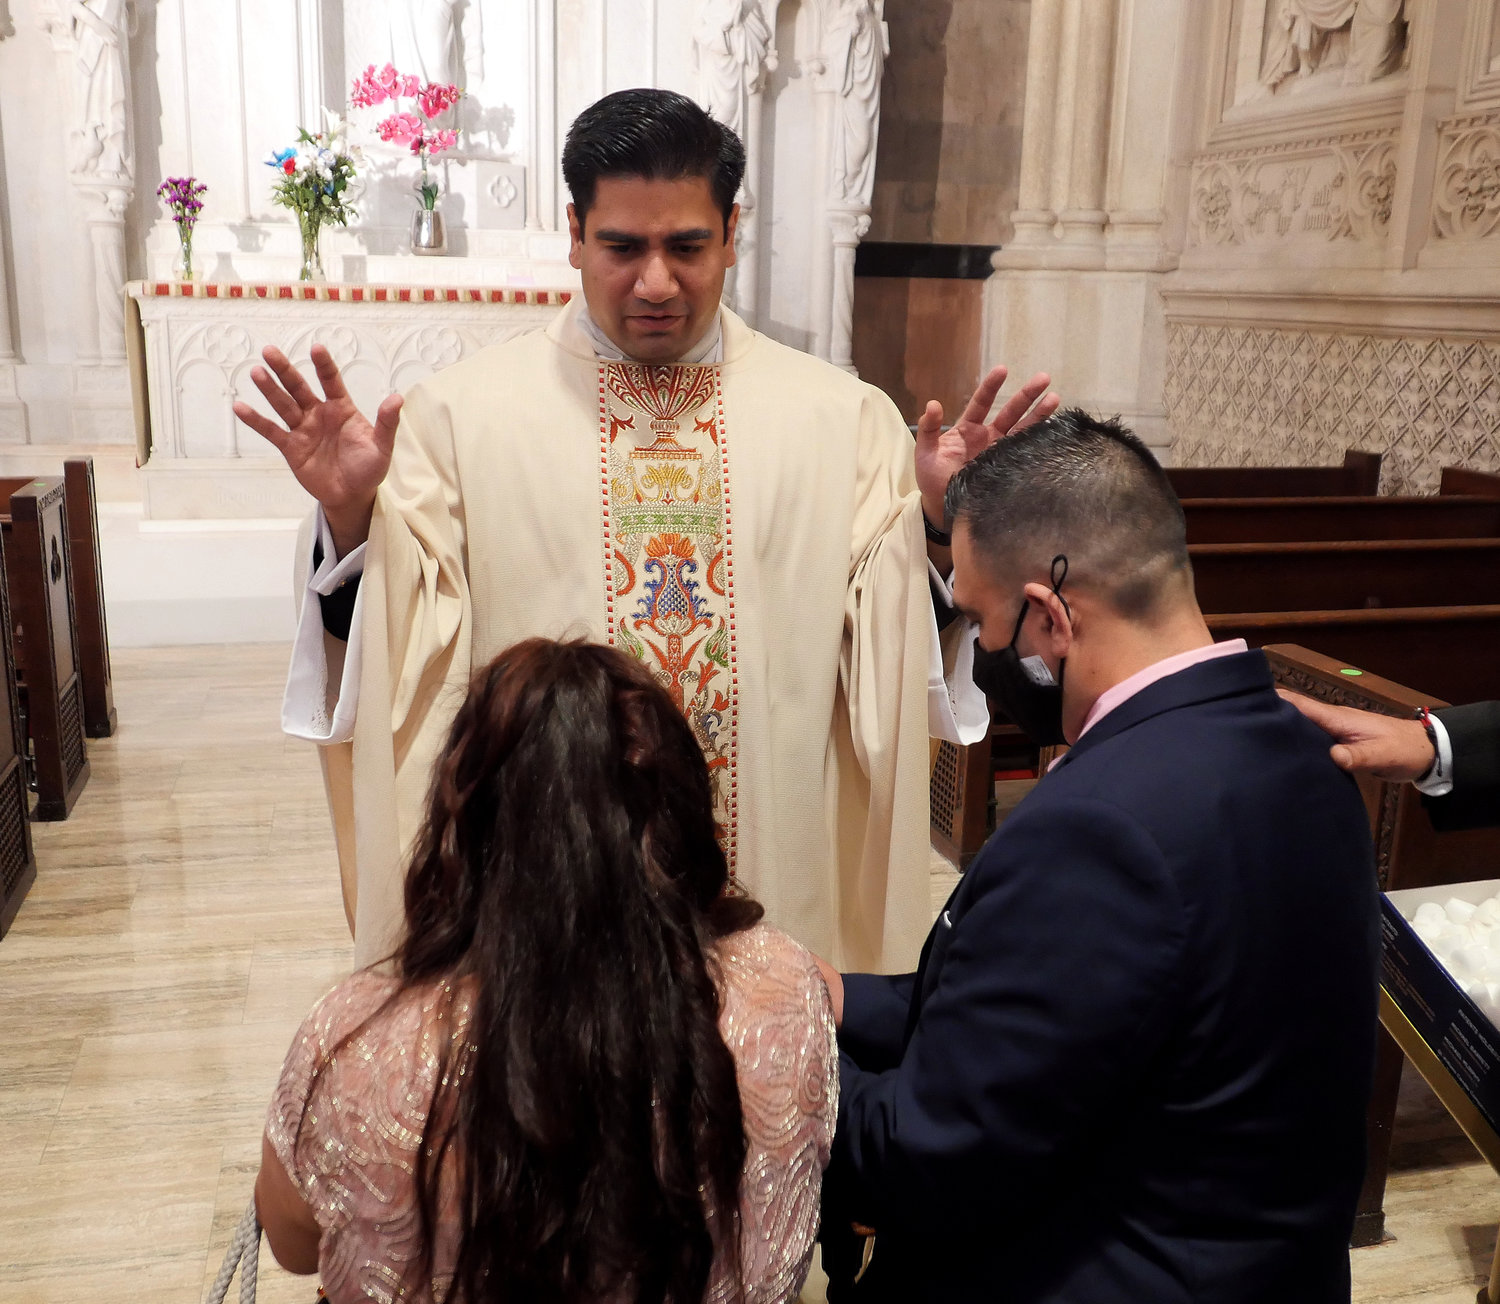 Father Luis Silva offers a first blessing after the Mass of Ordination.